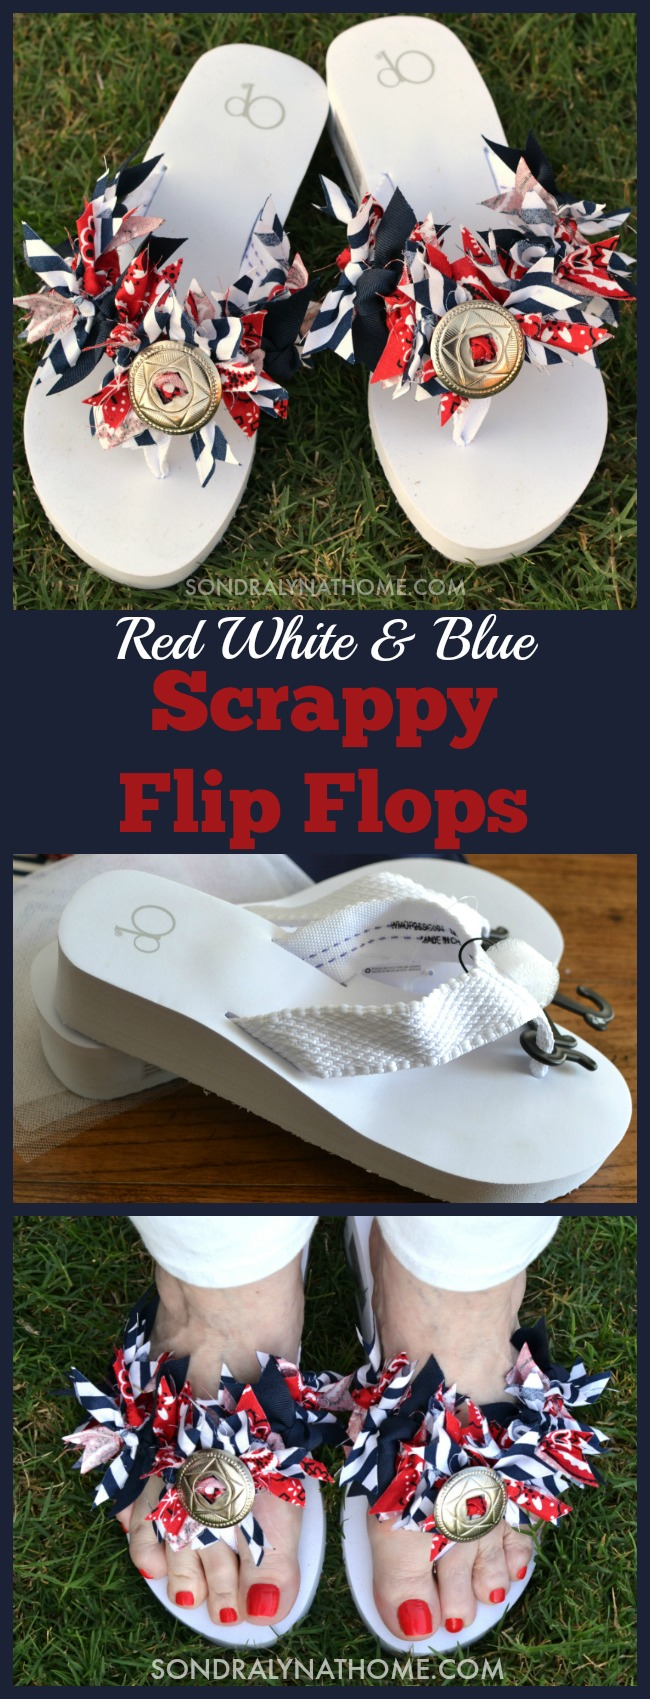 Red White Blue Scrappy Fabric Flip Flops -- Tutorial at Sondra Lyn at Home.com